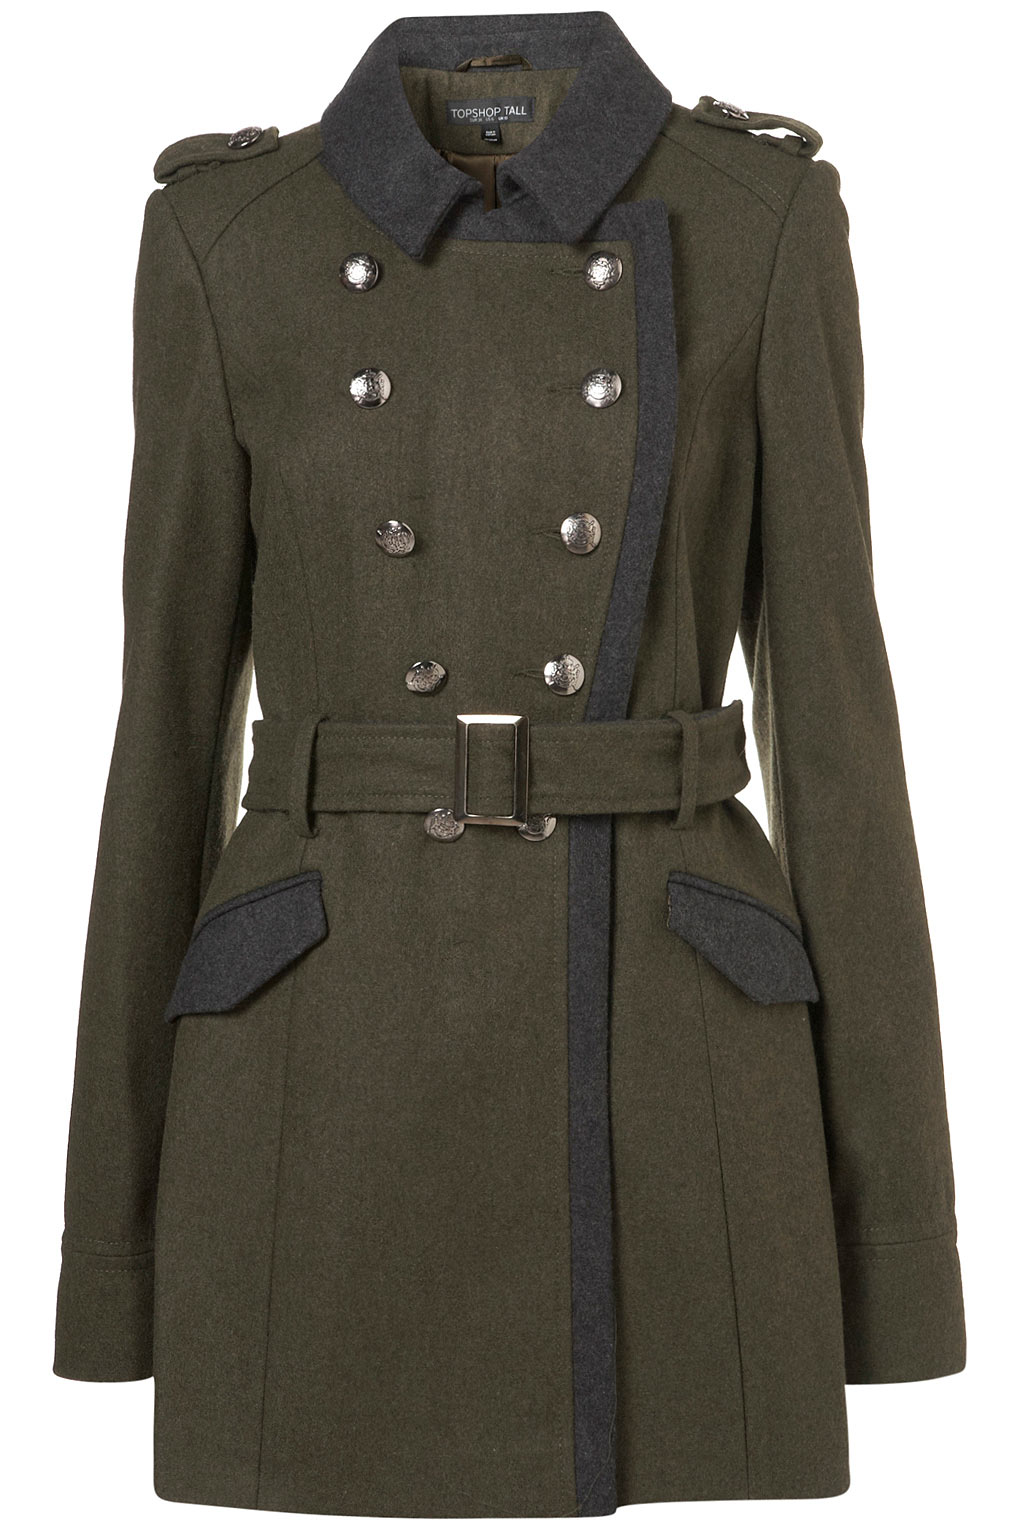 Military Inspired Coats | The Double Issue